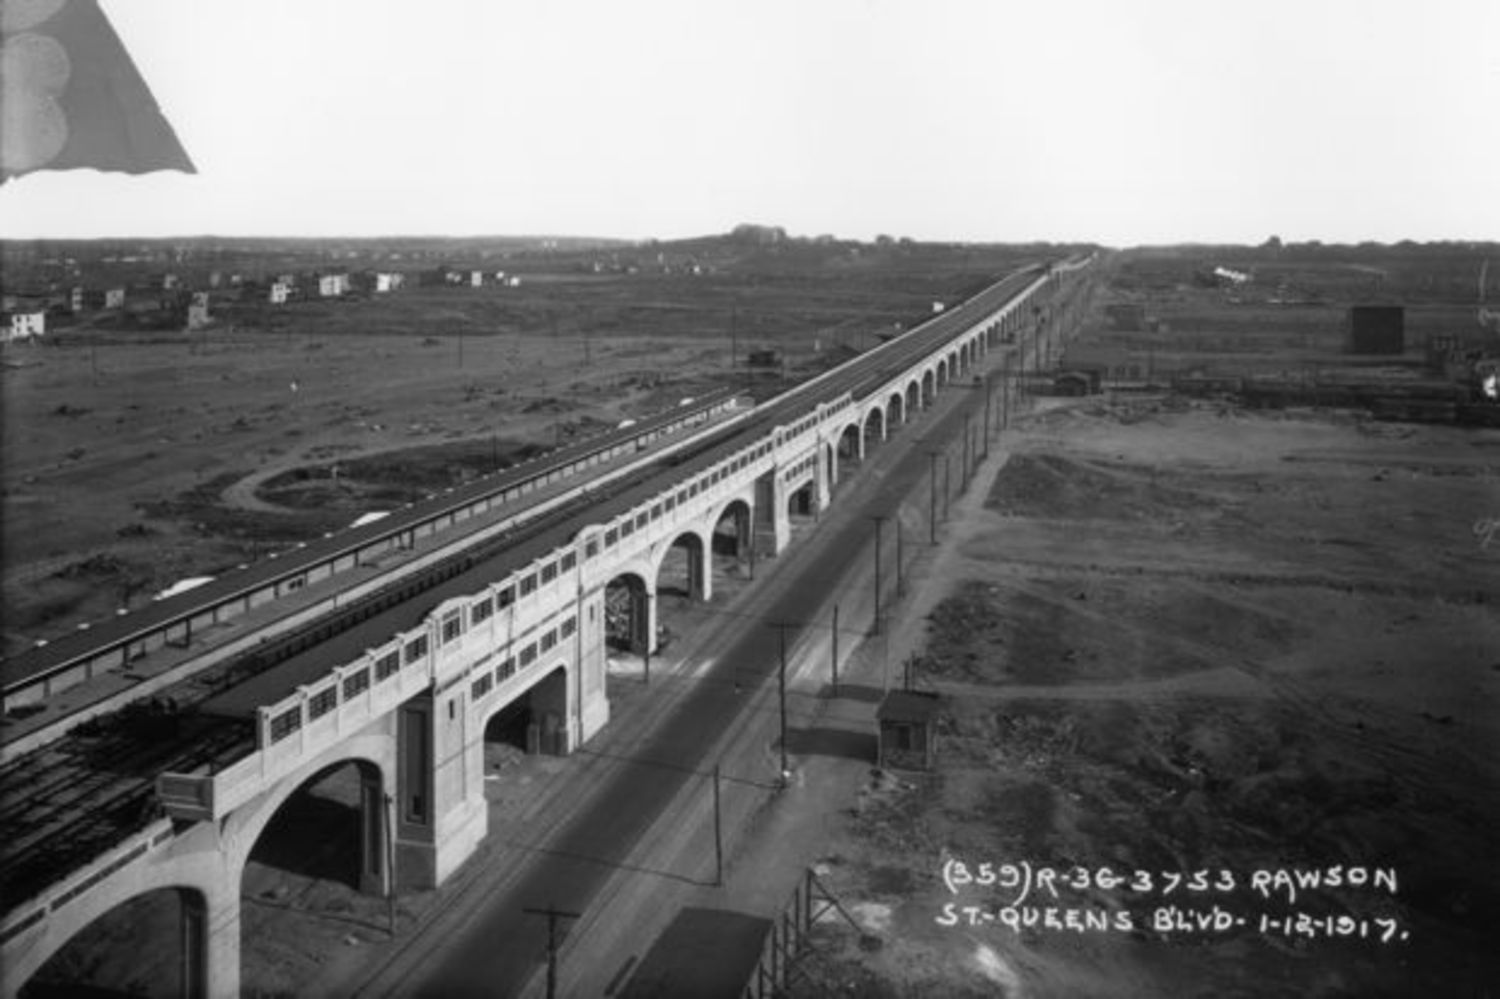 The Queens Boulevard Viaduct in 1916.